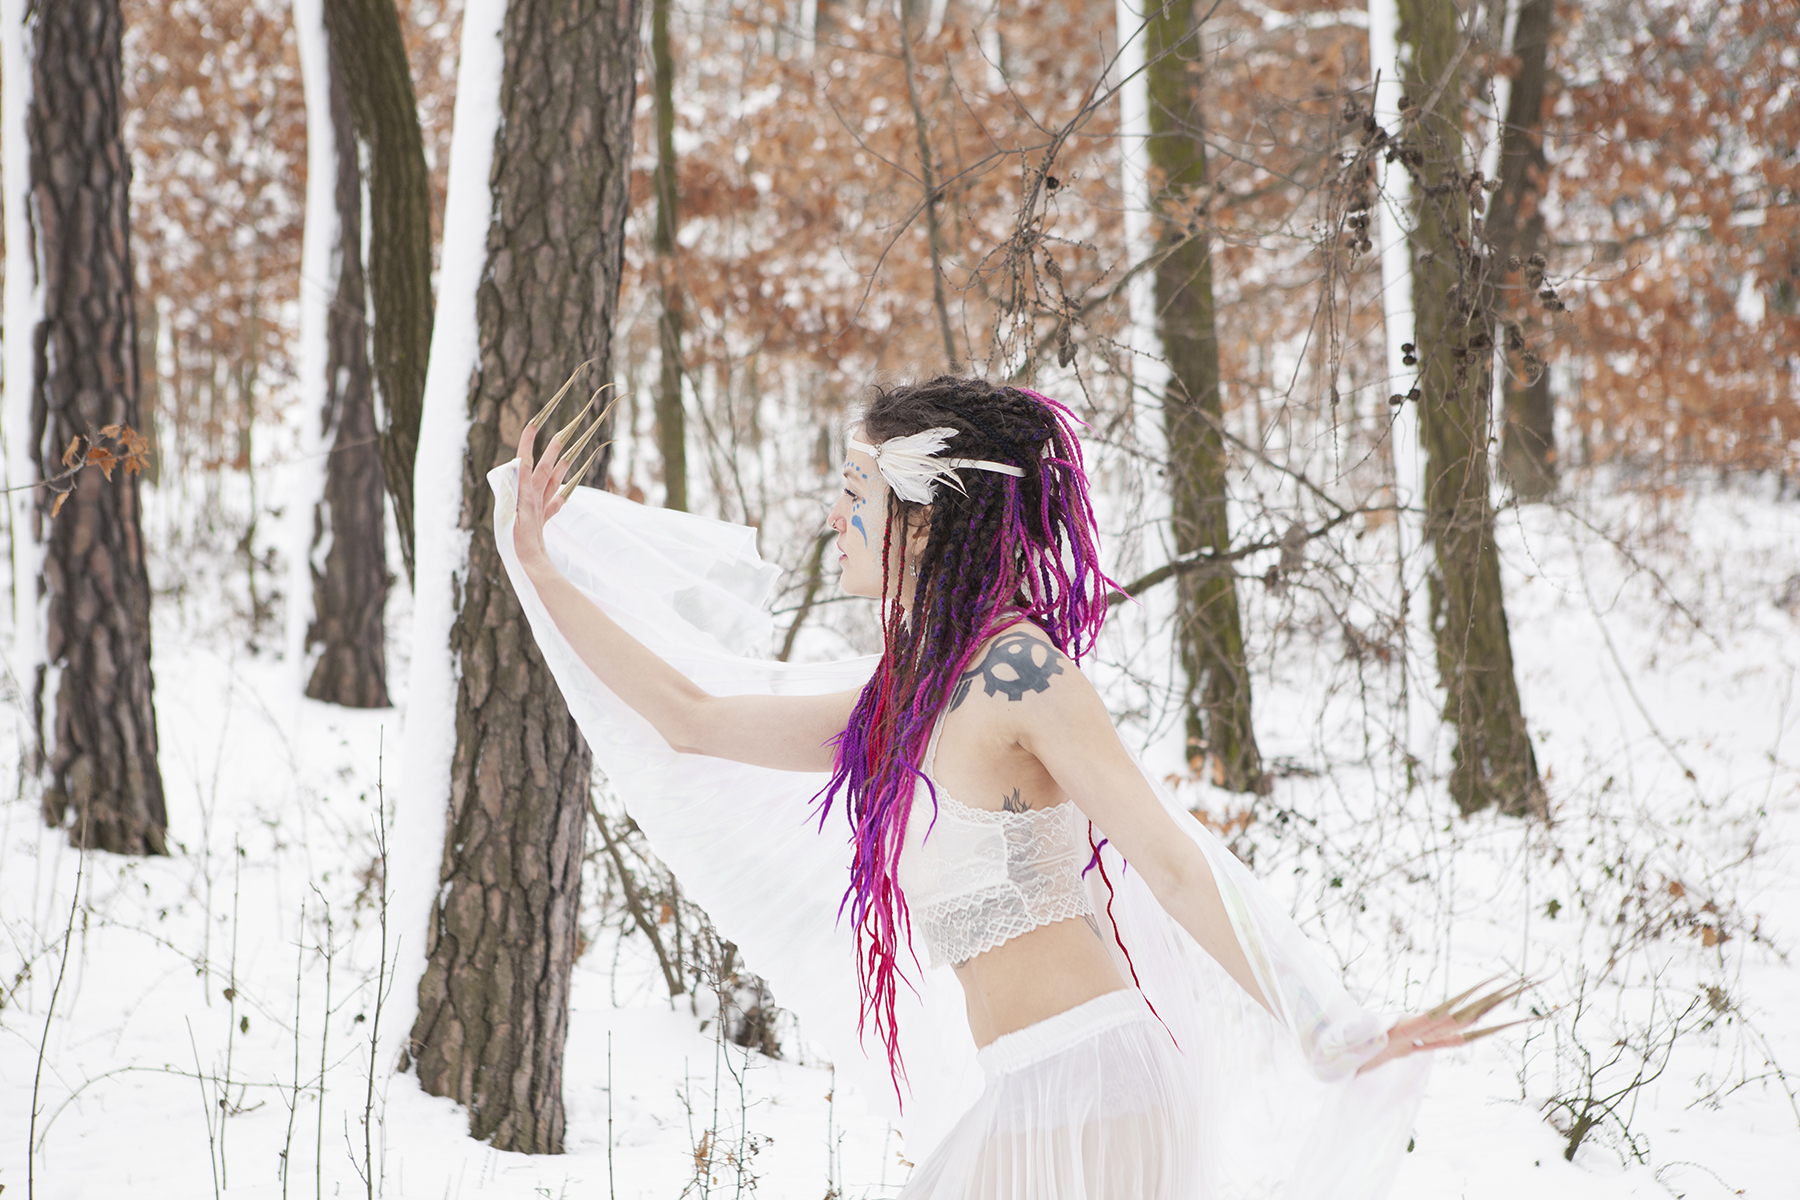 A photo of a purple hair fairy, wearing white, dancing in the forest in the sone